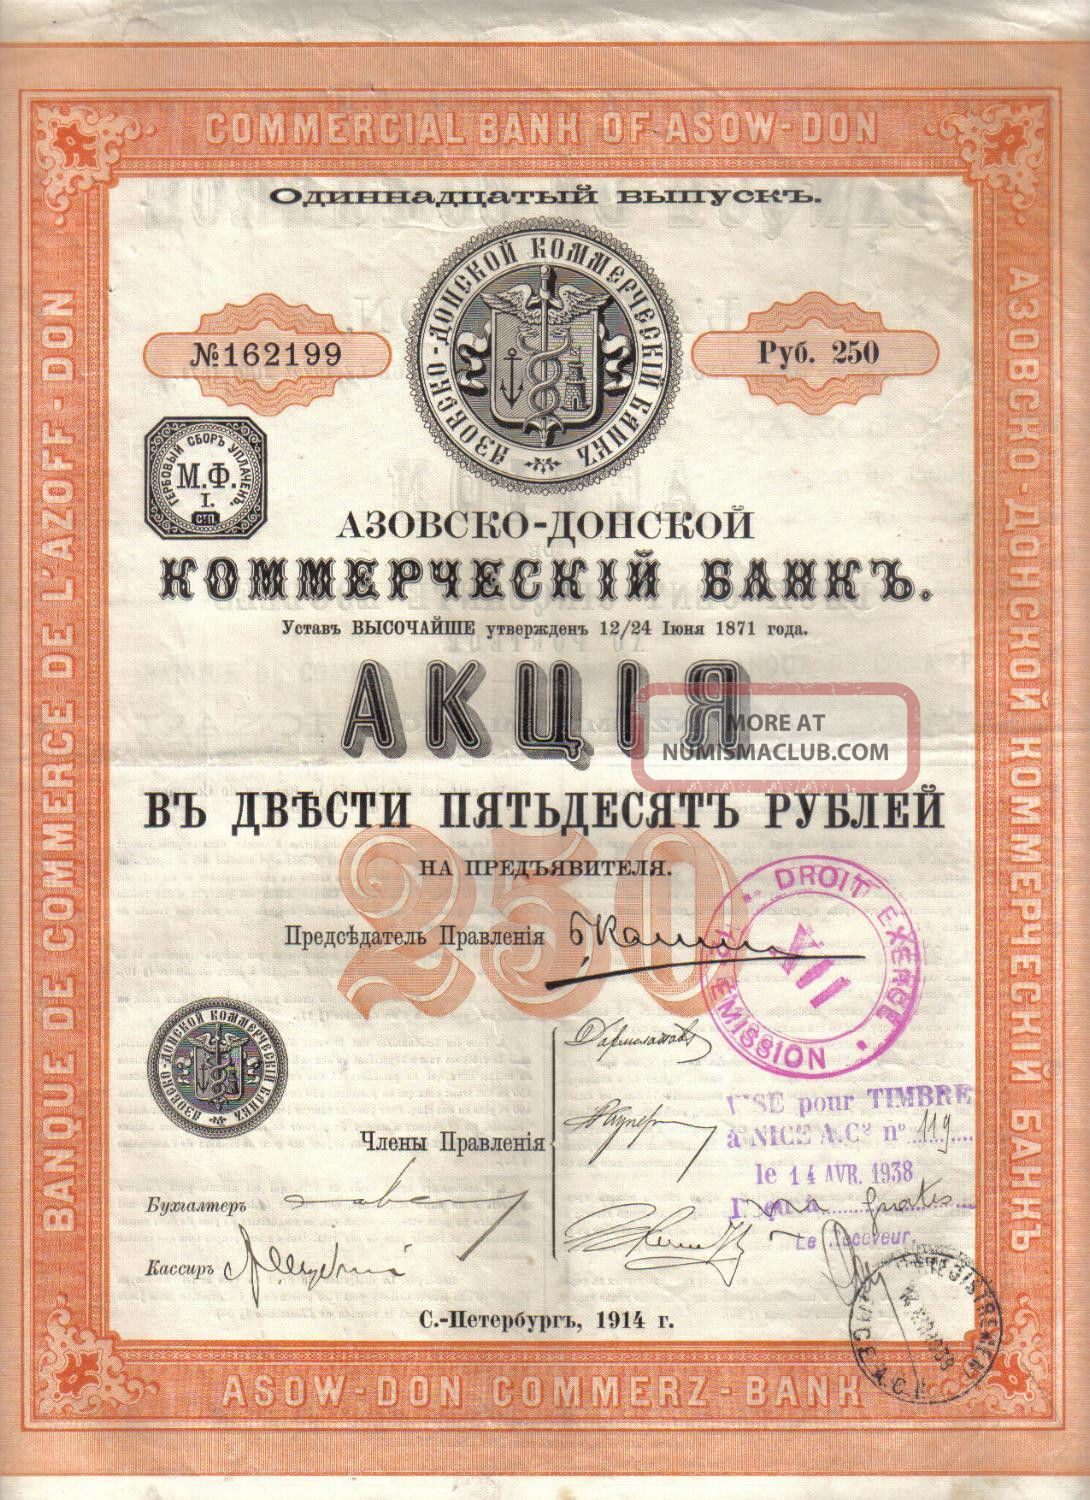 Russia Bond 1914 Commercial Bank Azov Don 250 Roubles Serie 11 Coupons World photo